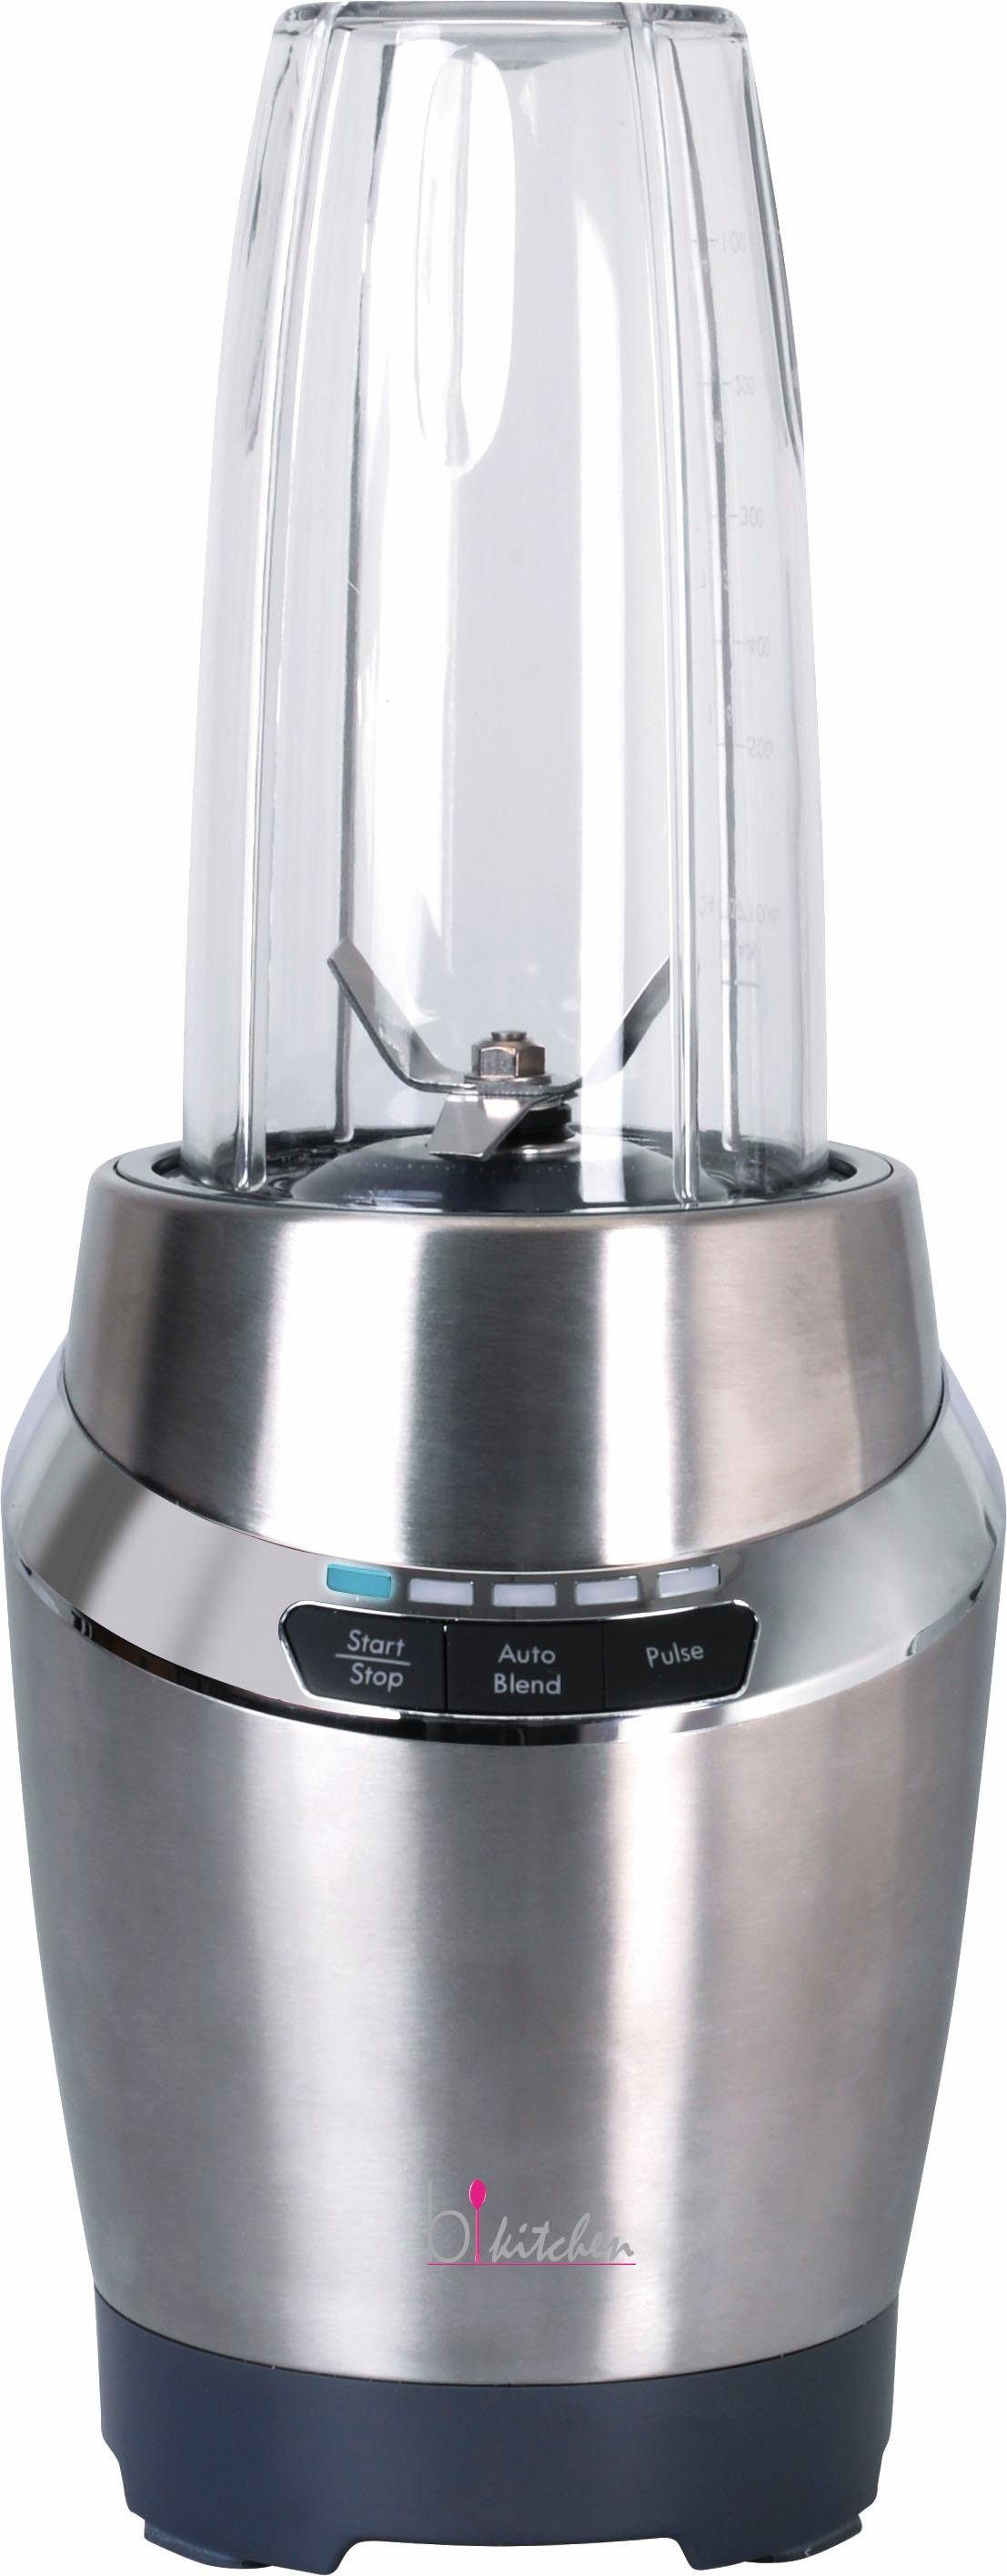 bkitchen Hochleistungs-Smoothie-Mixer smooth220, 900 Watt